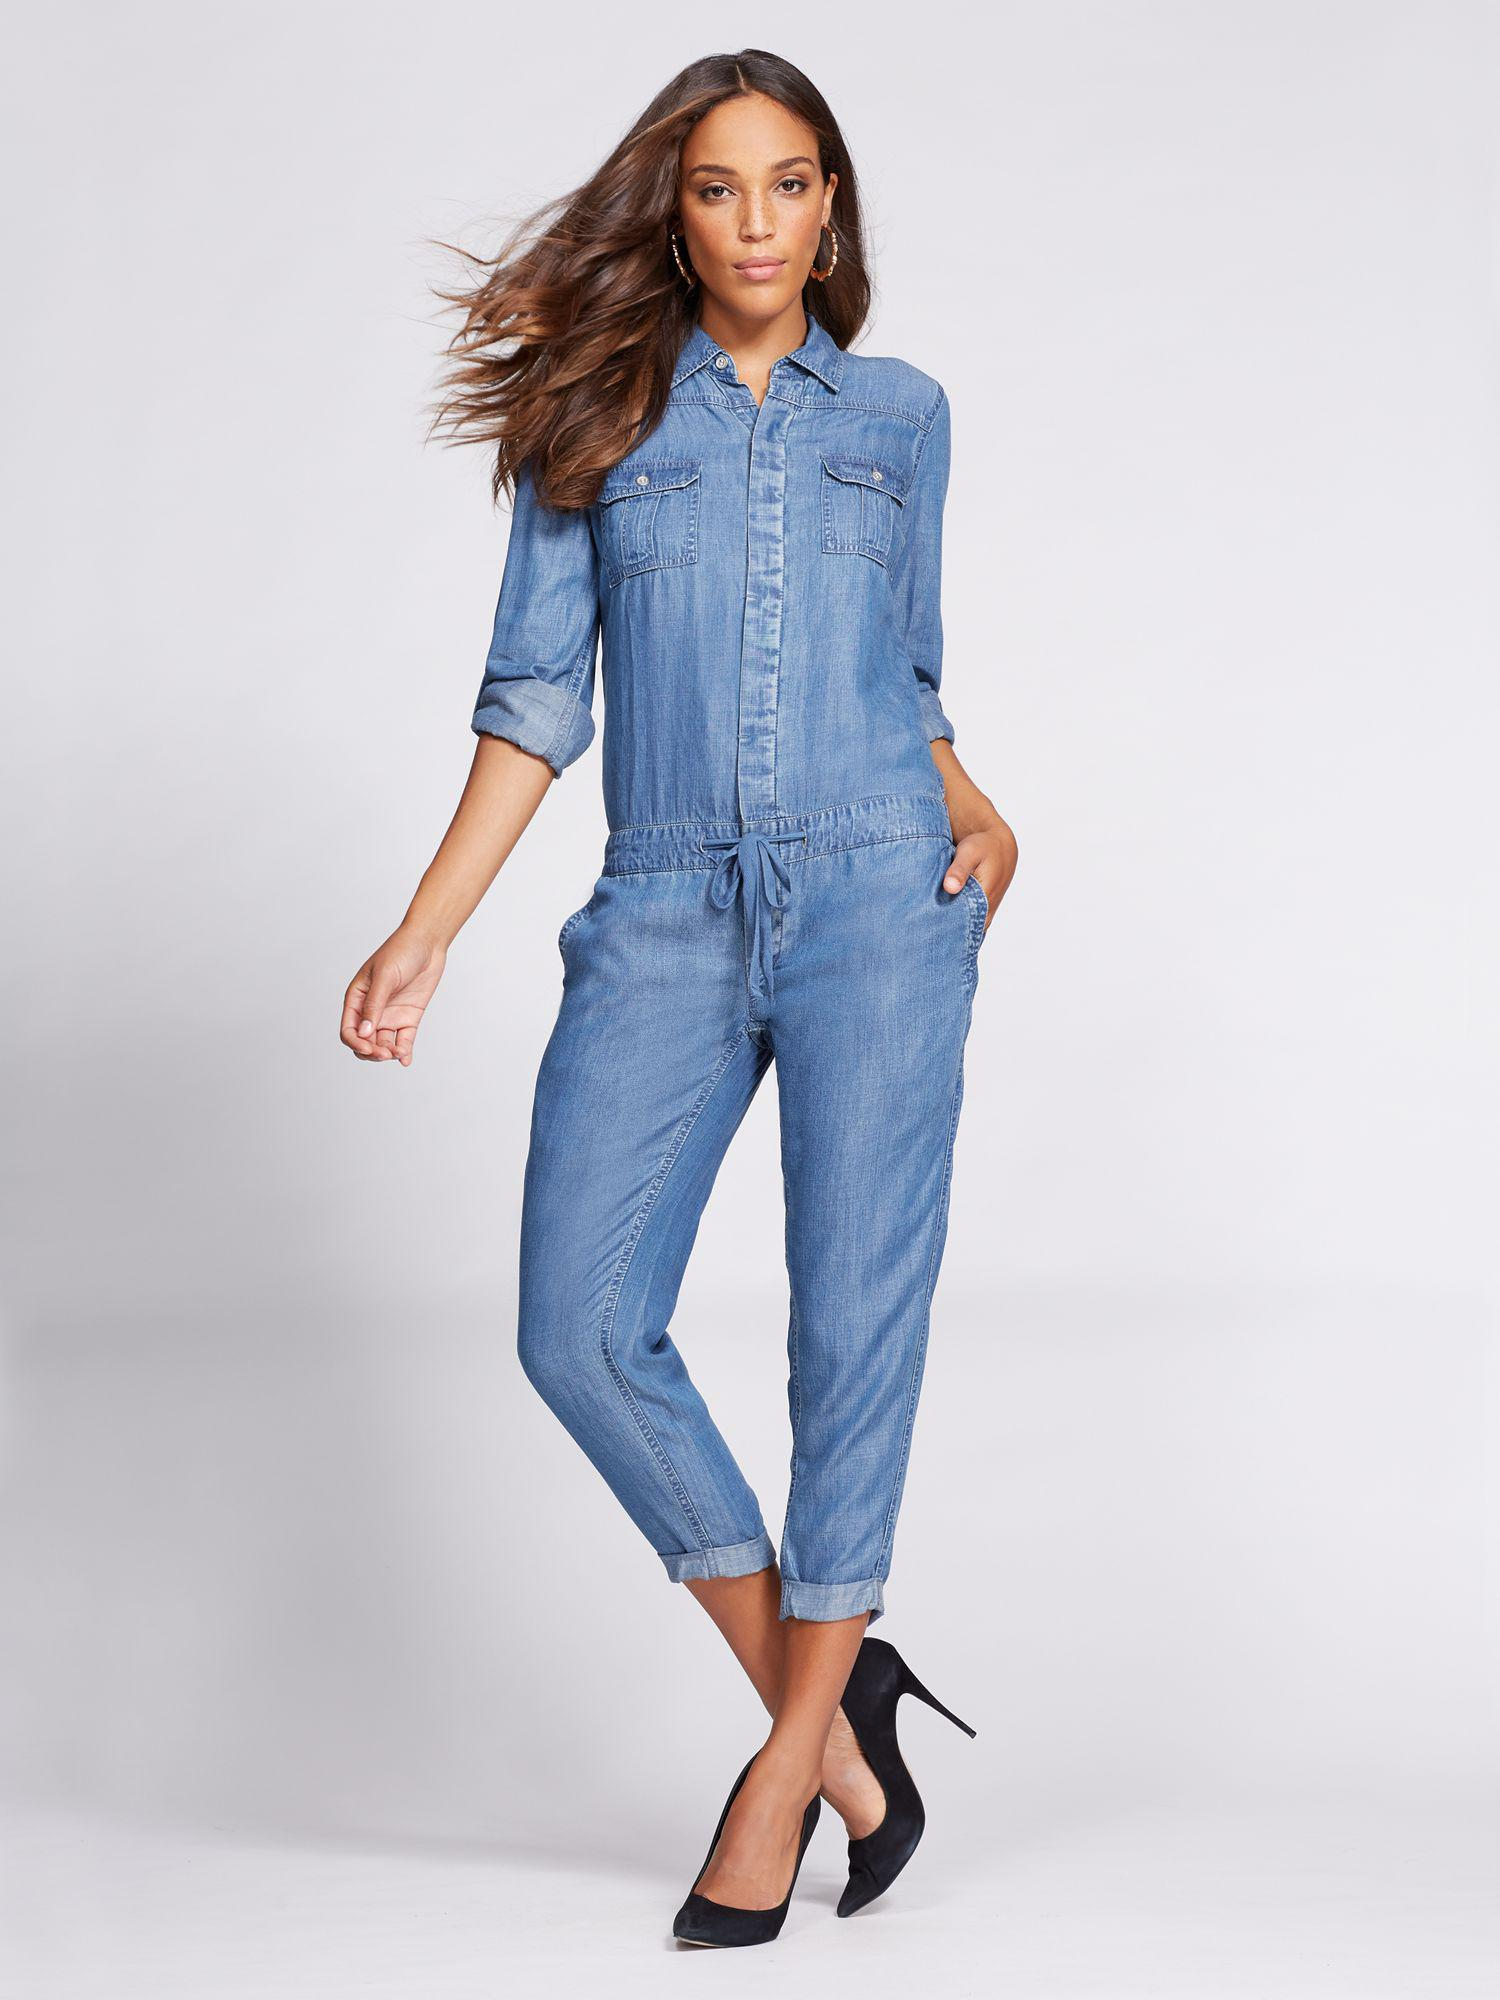 80b5db2d6c7e Lyst - New York   Company Gabrielle Union Collection - Denim ...